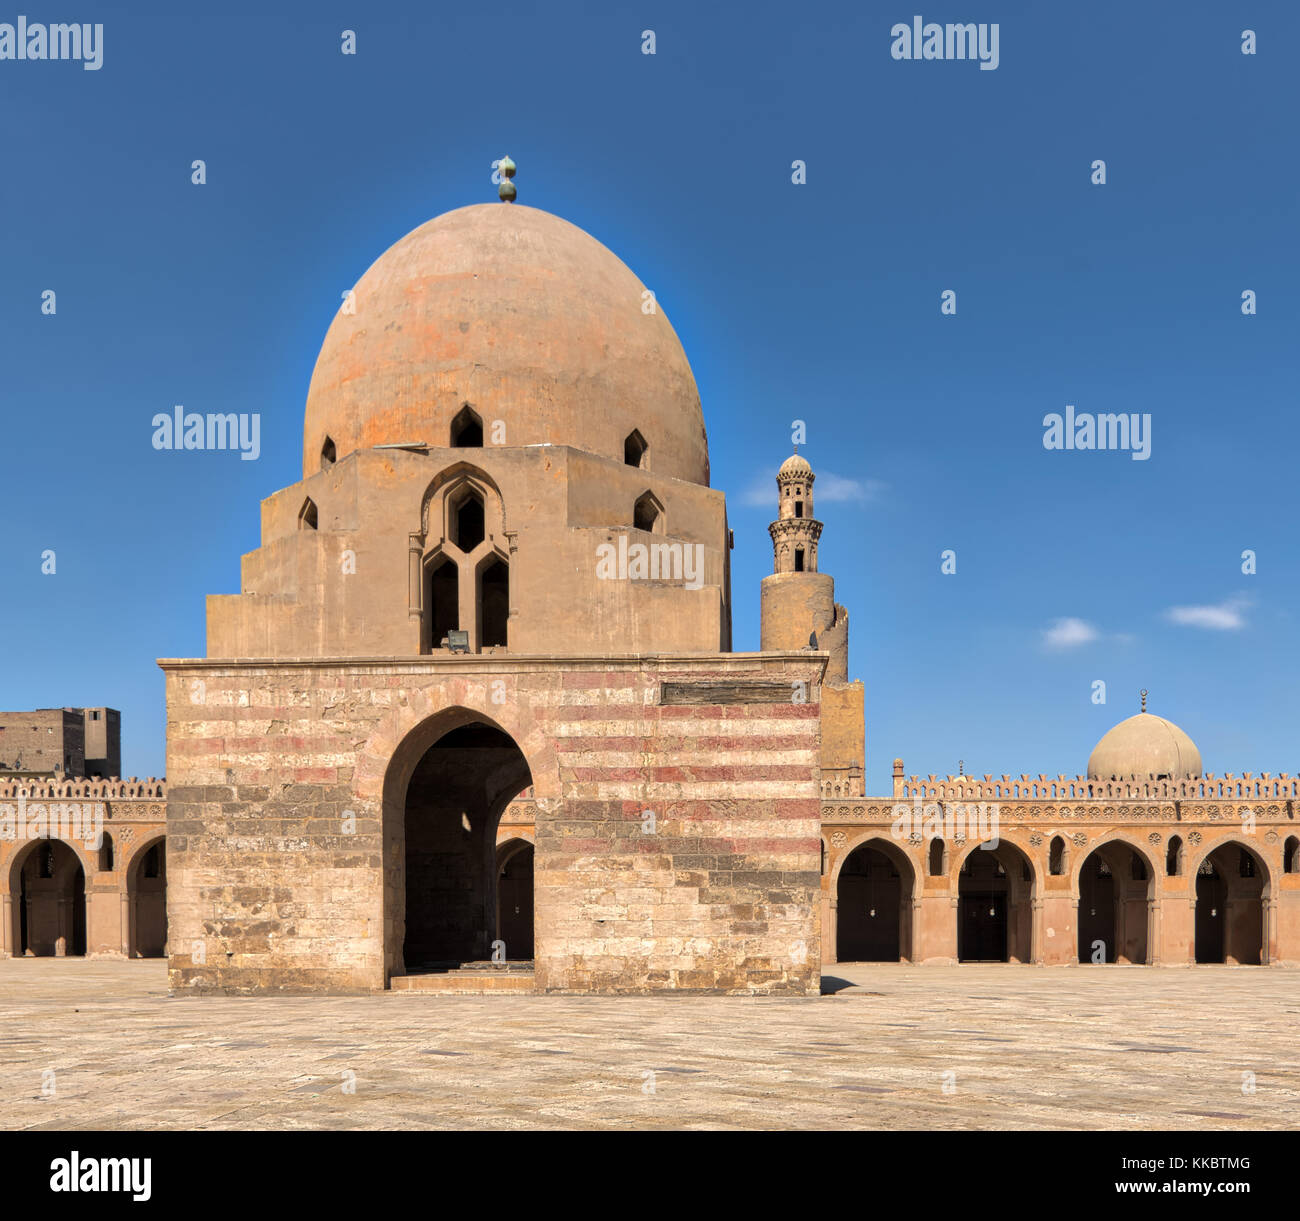 Courtyard of Ibn Tulun Mosque, Cairo, Egypt with ablution fountain and minaret in far distance - Stock Image